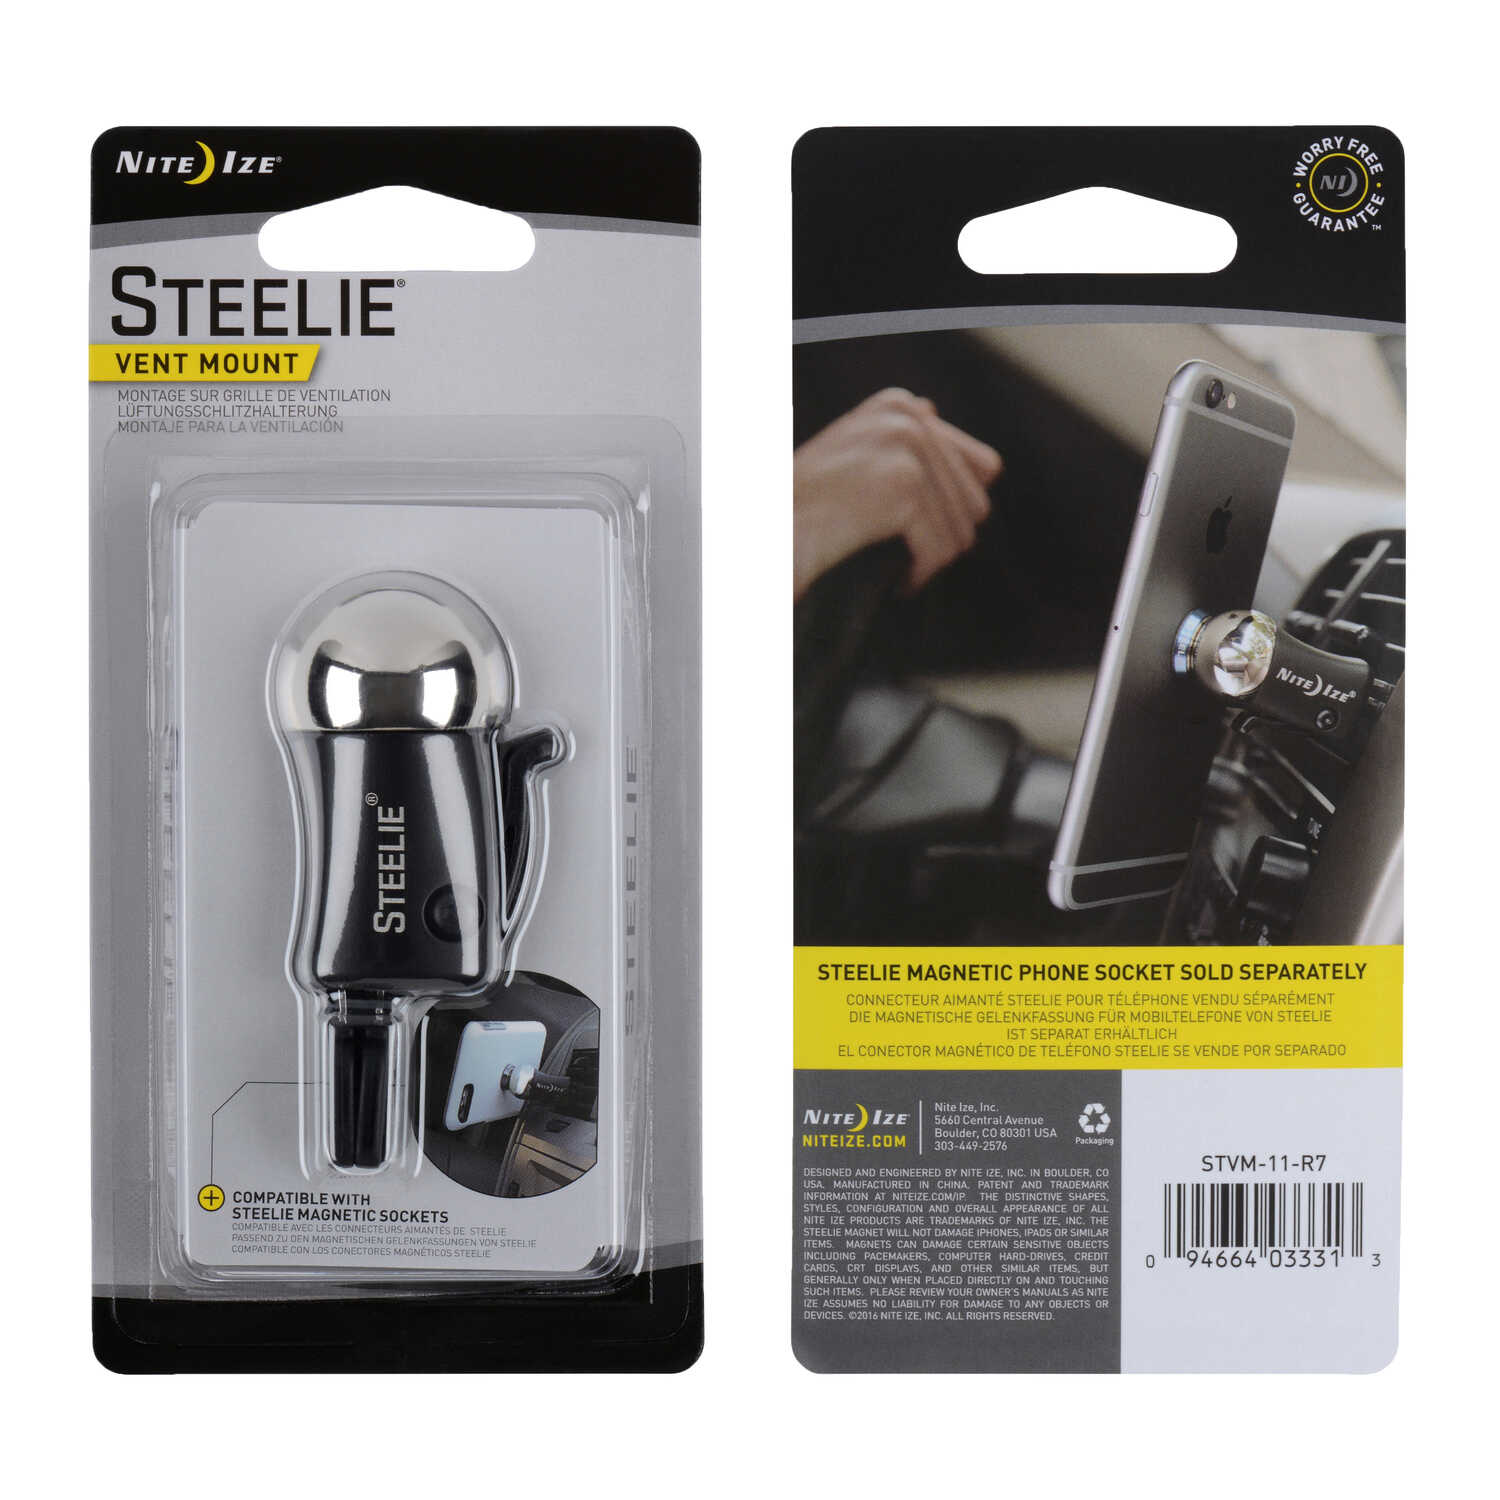 Nite Ize  Steelie  Black/Silver  Cell Phone Car Vent Mount  Universal